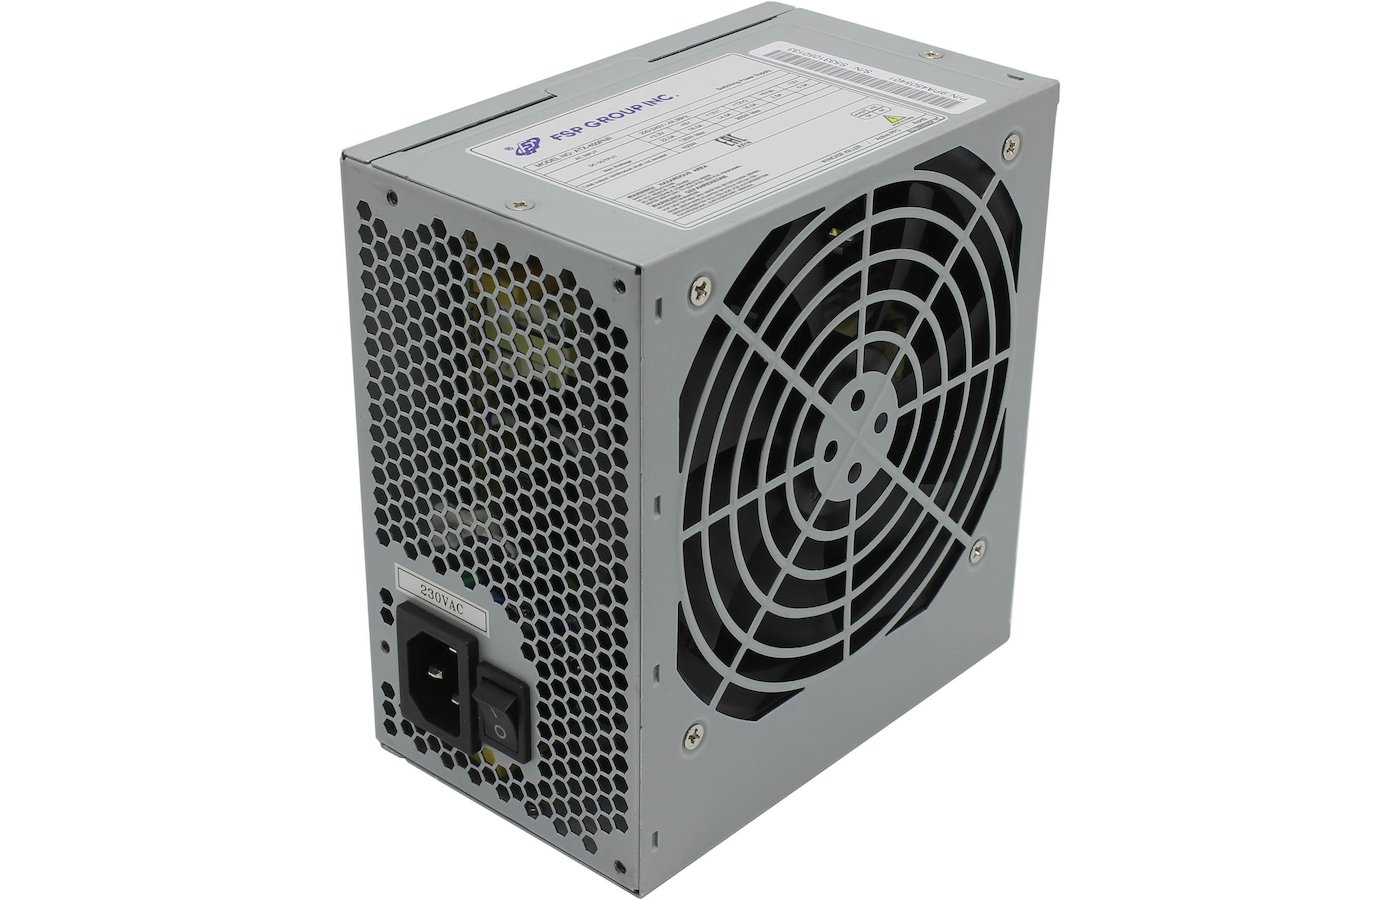 Блок питания FSP ATX 450W ATX-450PNR-I (24+4+4pin) APFC 120mm fan 3xSATA